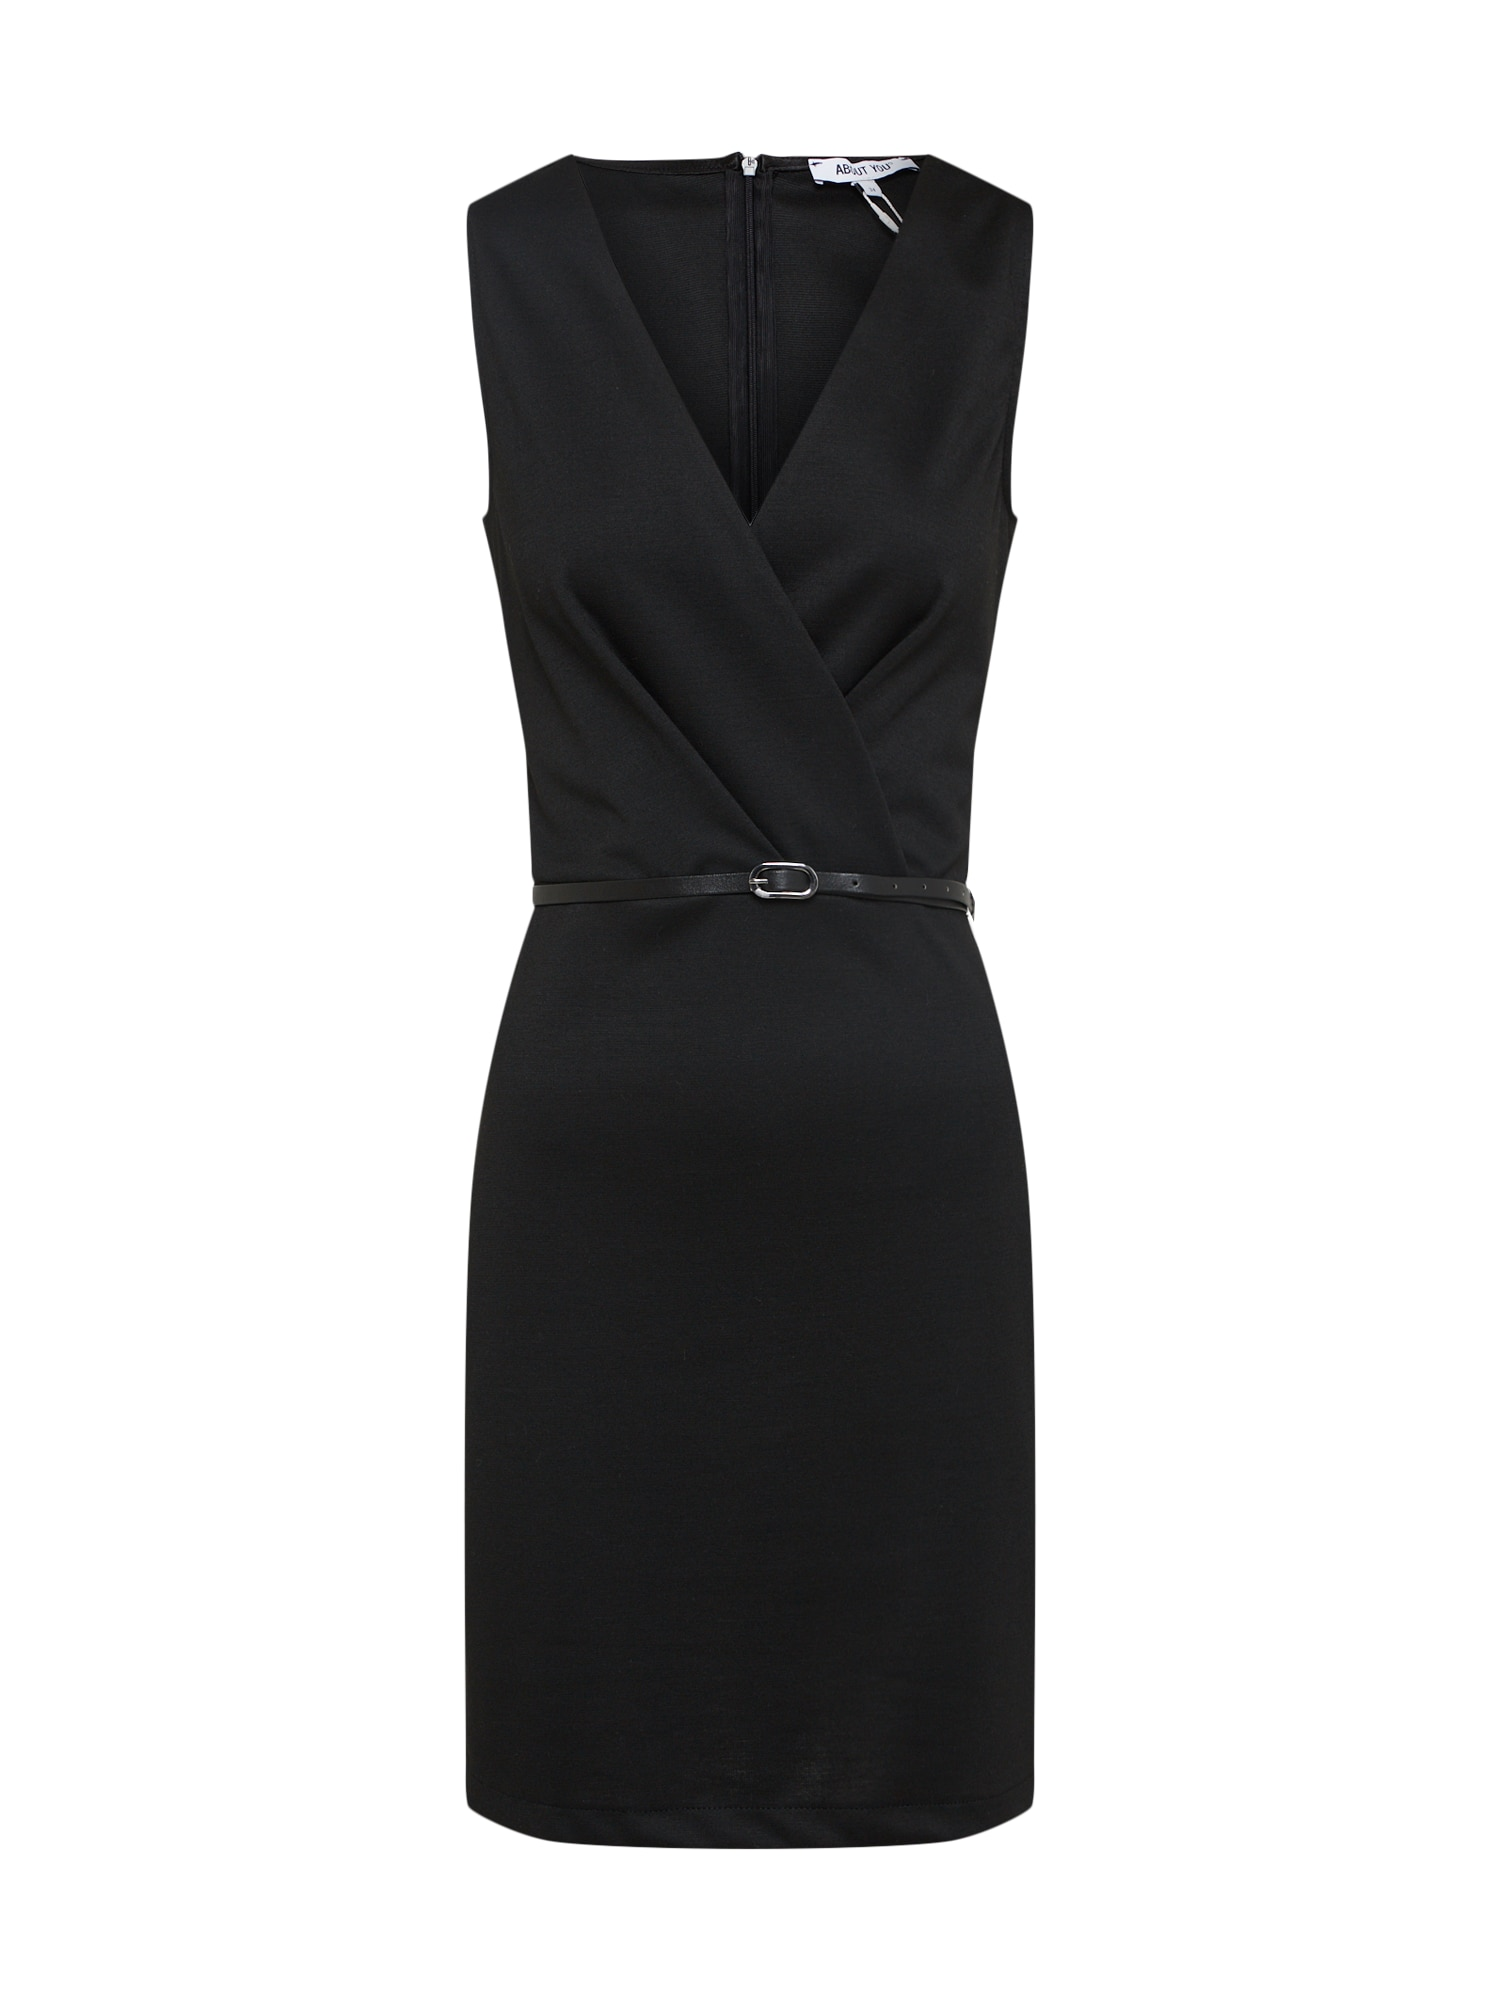 ABOUT YOU Jurk 'Ludmilla Dress' zwart